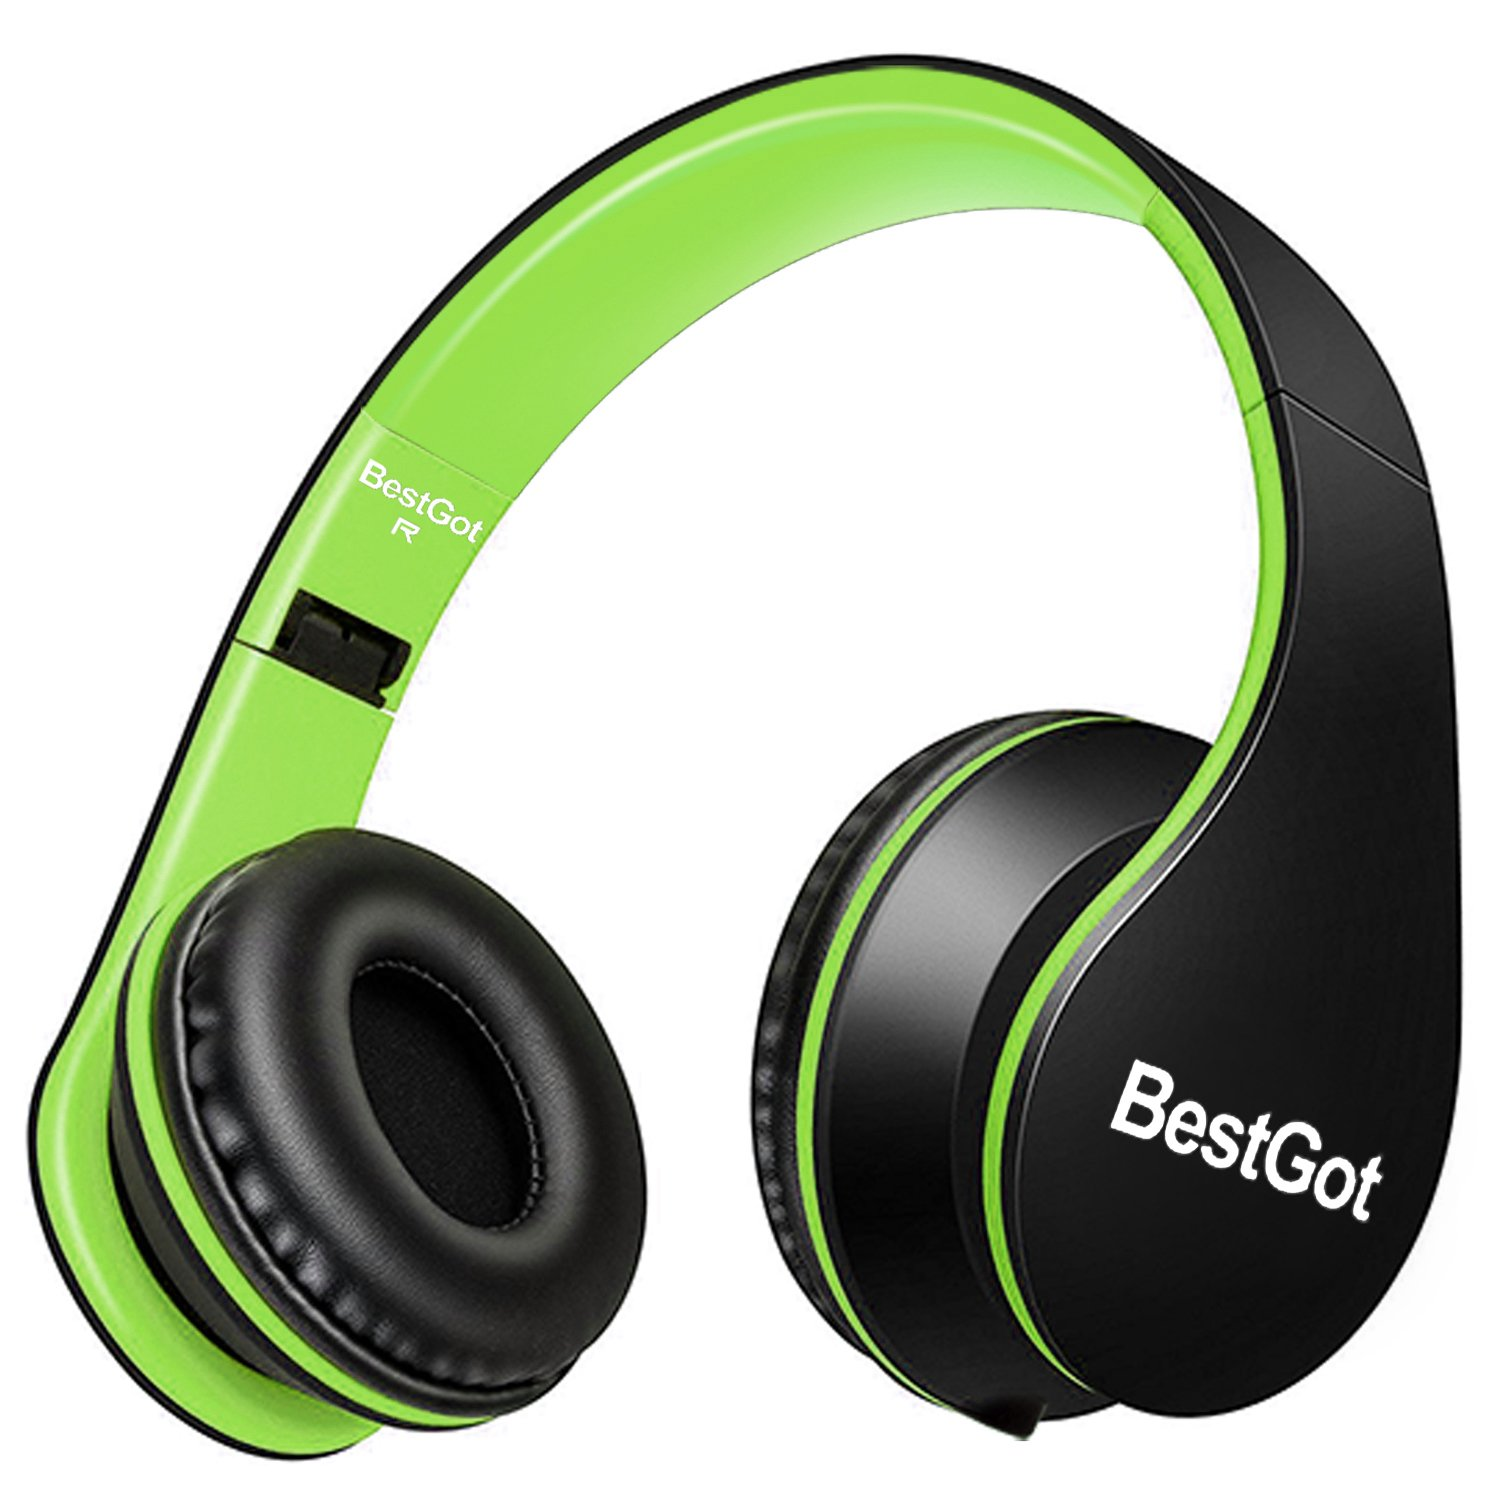 BestGot Kids Headphones Boys Adult Over Ear with Microphone for Kids in-line Volume with Transport Waterproof Bag Foldable Headphone with 3.5mm Plug Removable Cord (Black/Green)